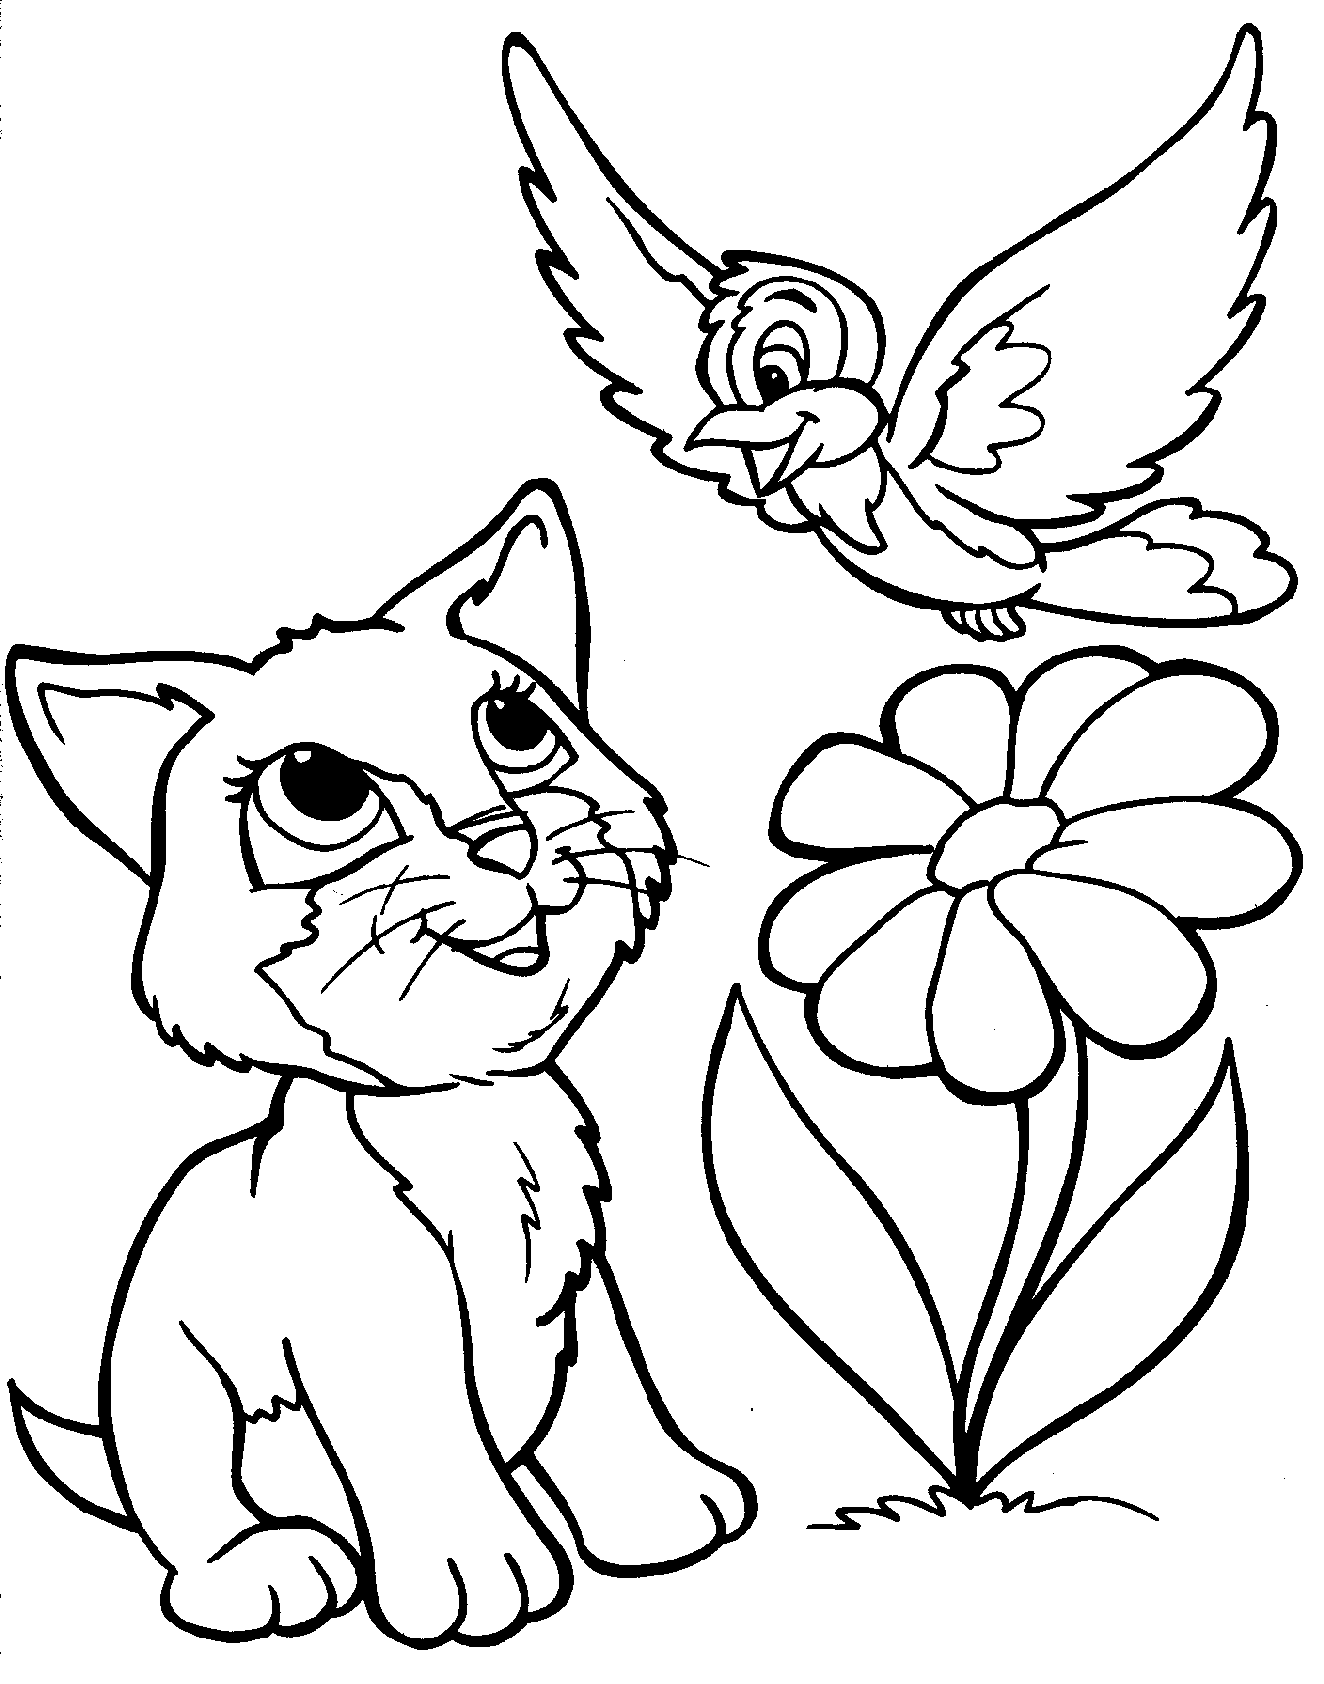 Kitten Bird Flower Coloring Page Printable